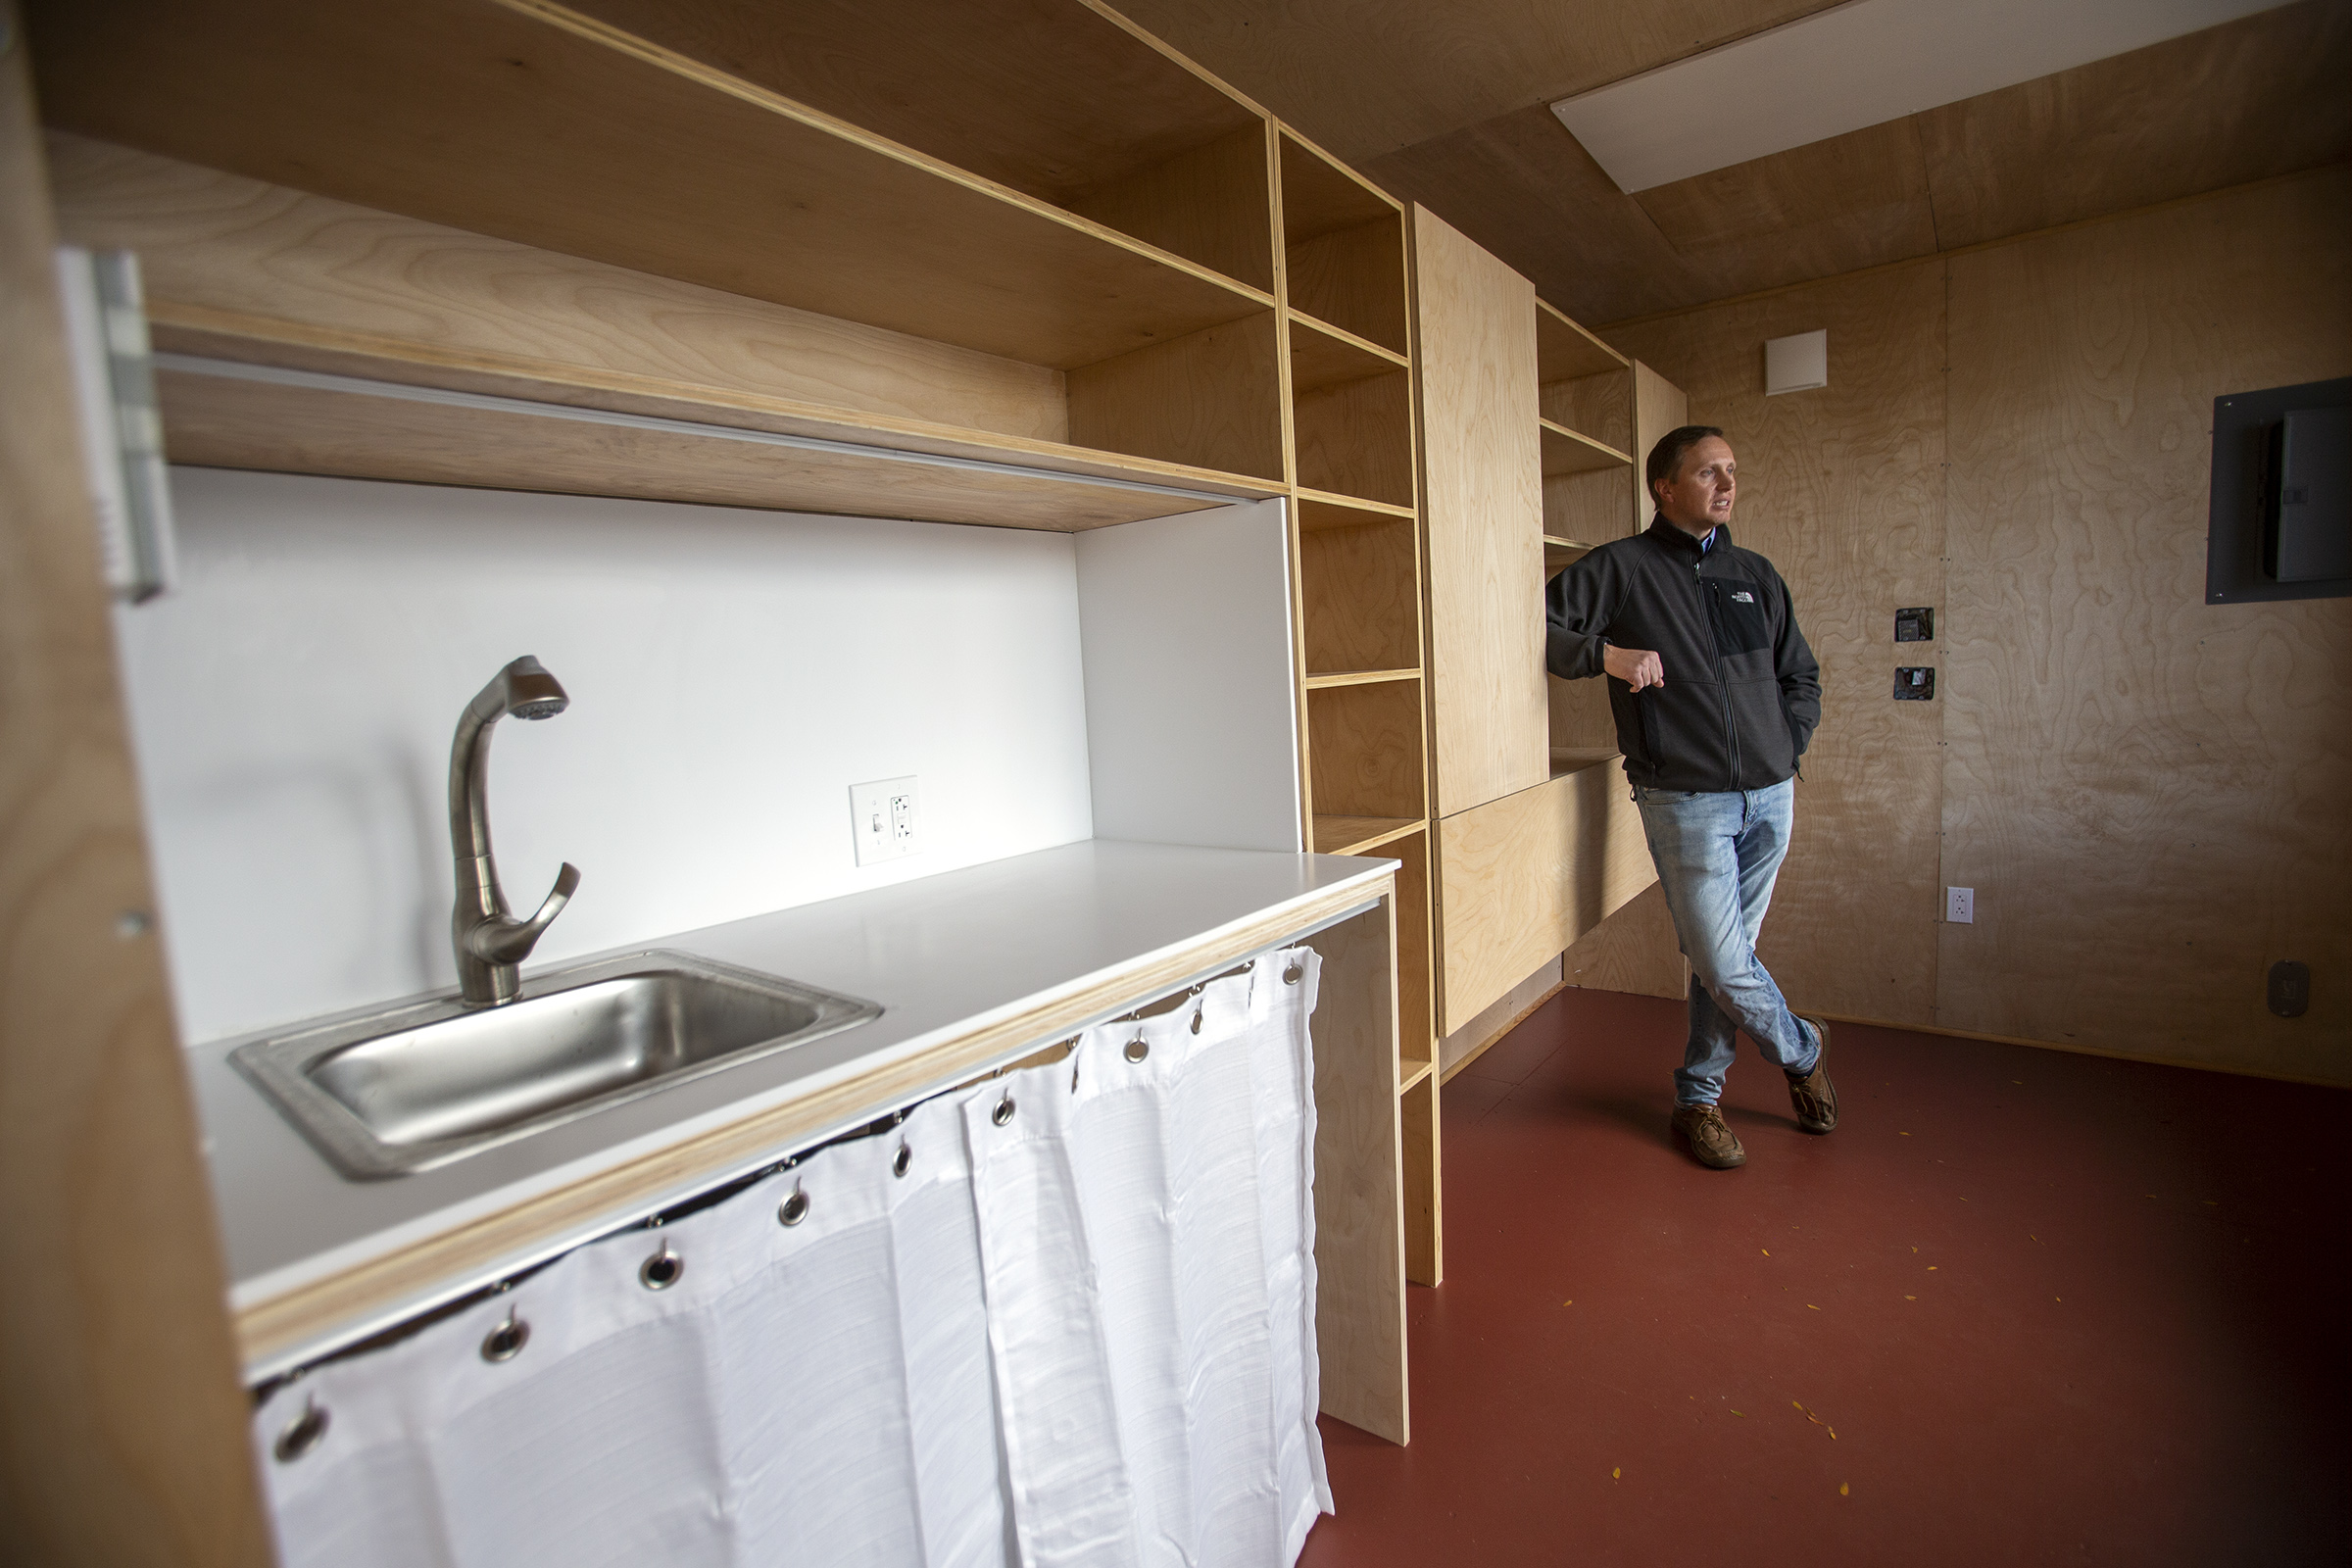 Jeff Tuft,an associate at Architectural Nexusin Salt Lake City, shows off the125-square-foot tiny homethe company built for a Seattle-based project aimed at ending homelessness on Tuesday, Oct. 29, 2019. The home will be delivered to Seattle in the next few days.